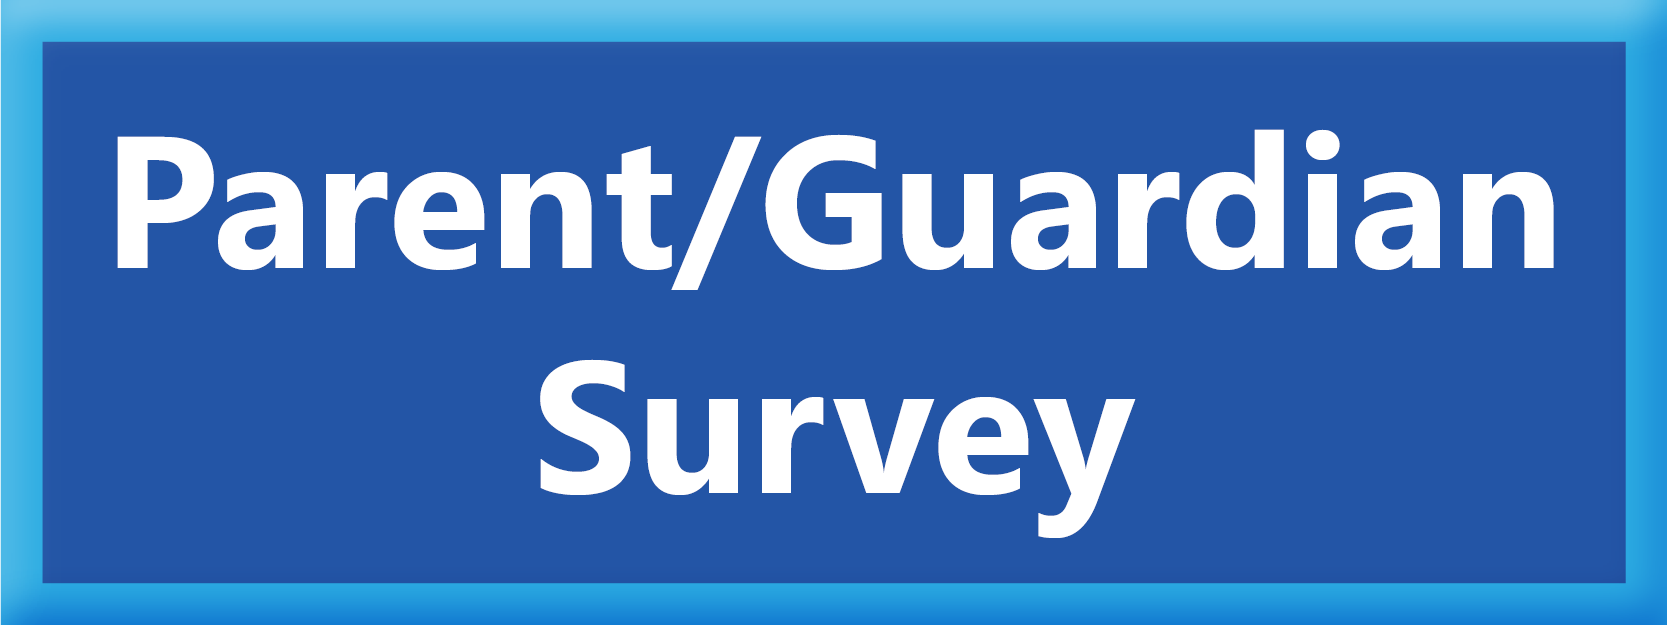 Parent/Guardian Survey Button